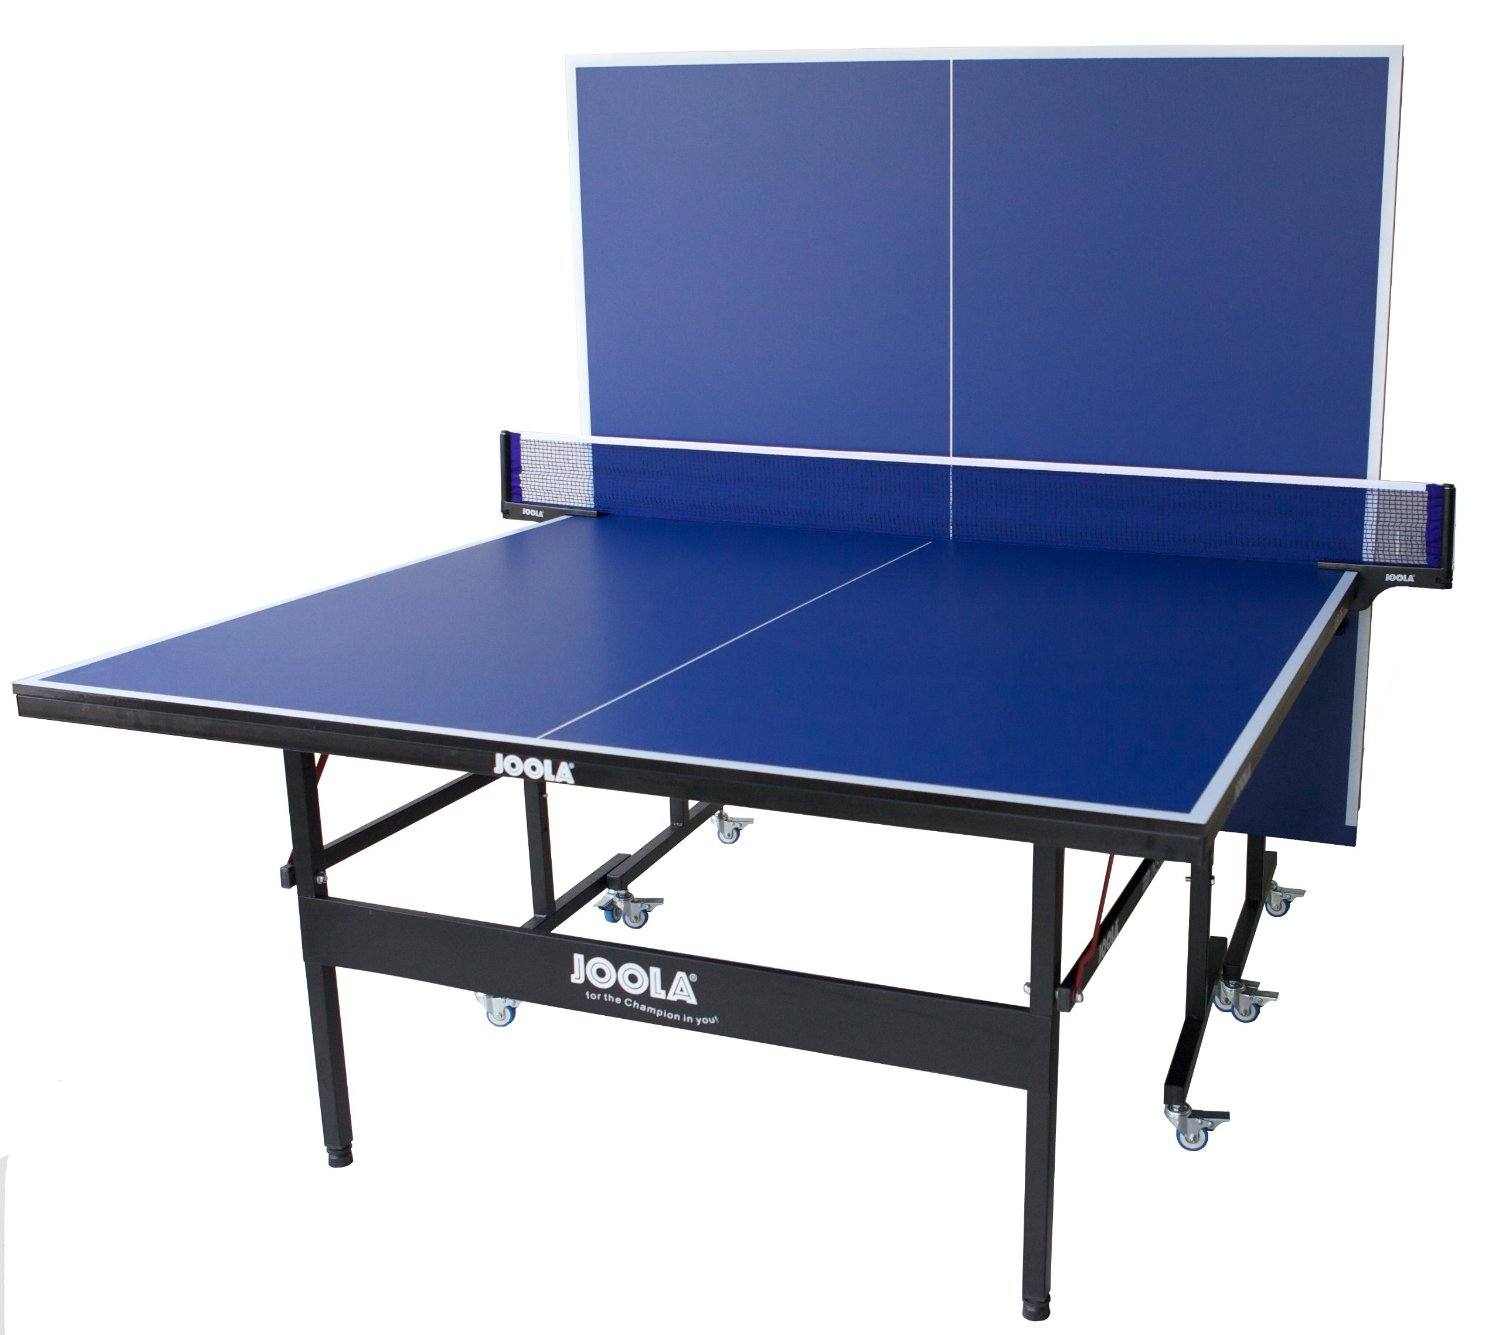 joola inside table tennis table. Black Bedroom Furniture Sets. Home Design Ideas